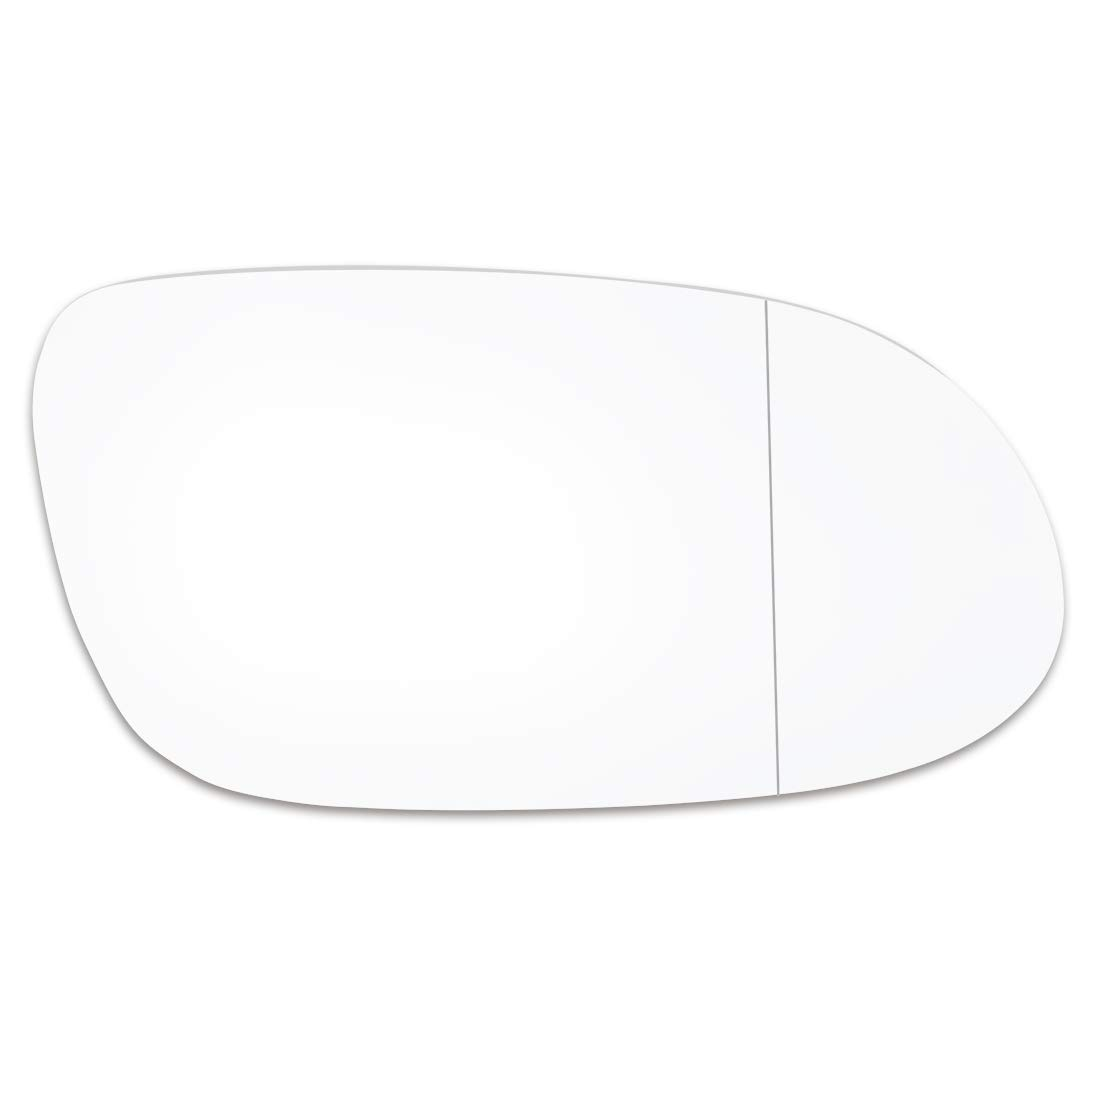 X AUTOHAUX Car Passenger Right Side Rearview Mirror Glass Adhesive for Mercedes Benz CLK SL SLK AMG MODEL